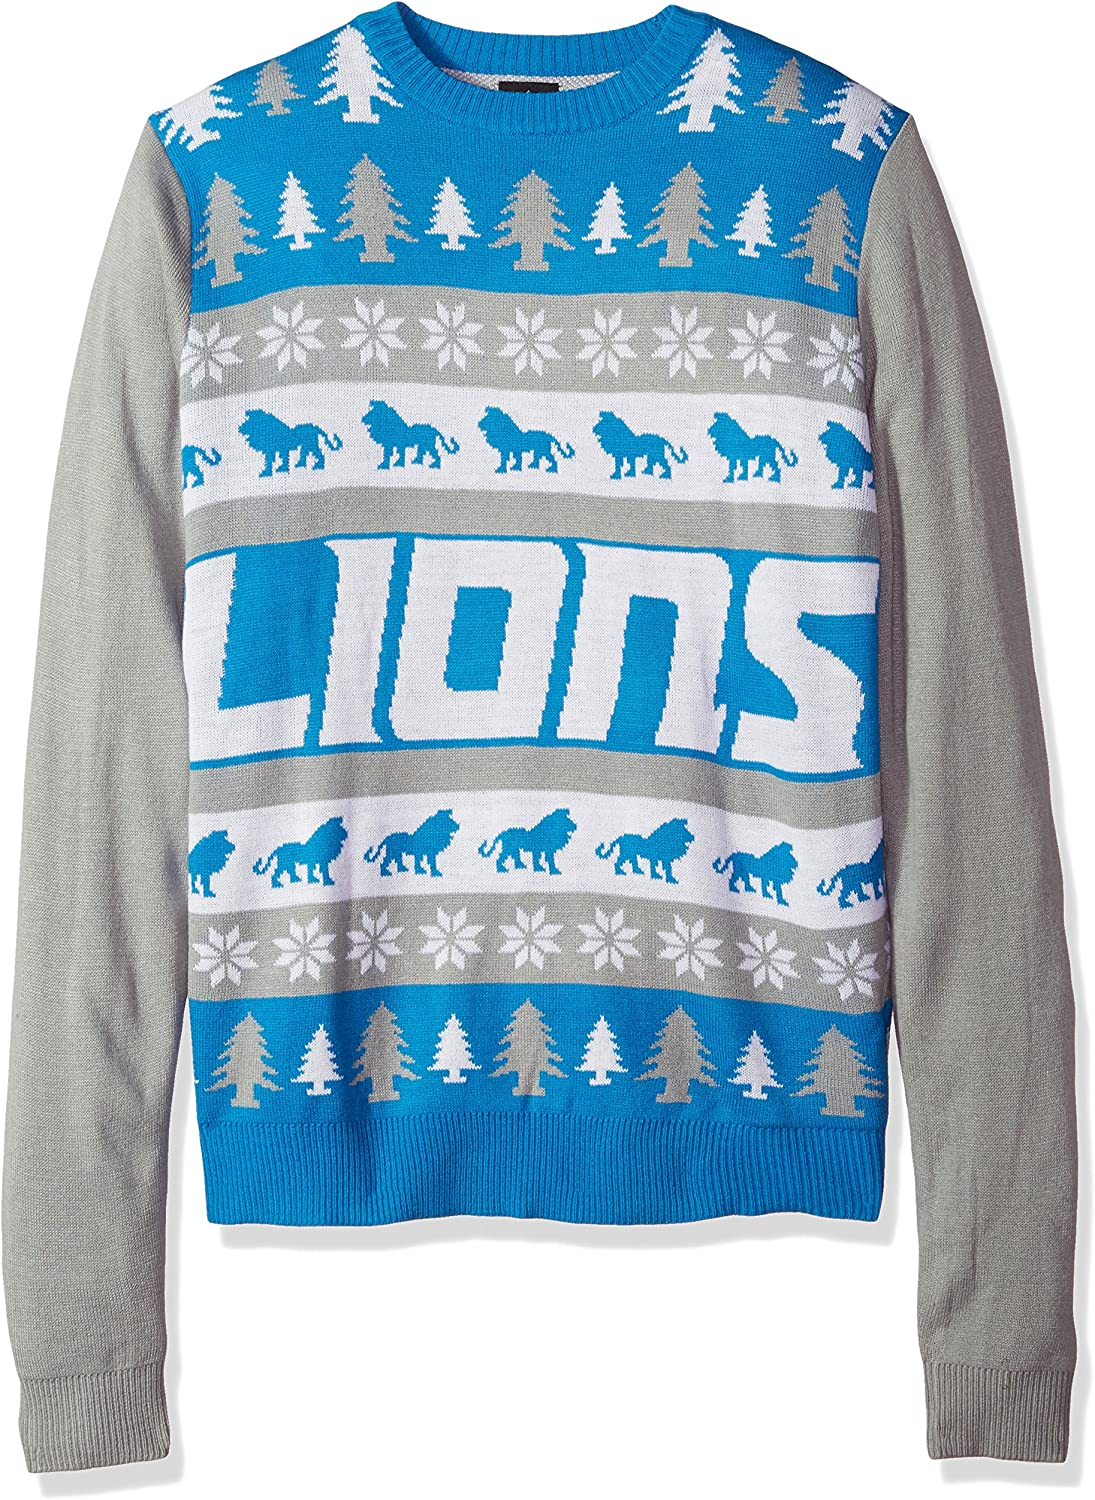 KLEW NFL Detroit Lions Busy Block Ugly Sweater, Medium, bluee